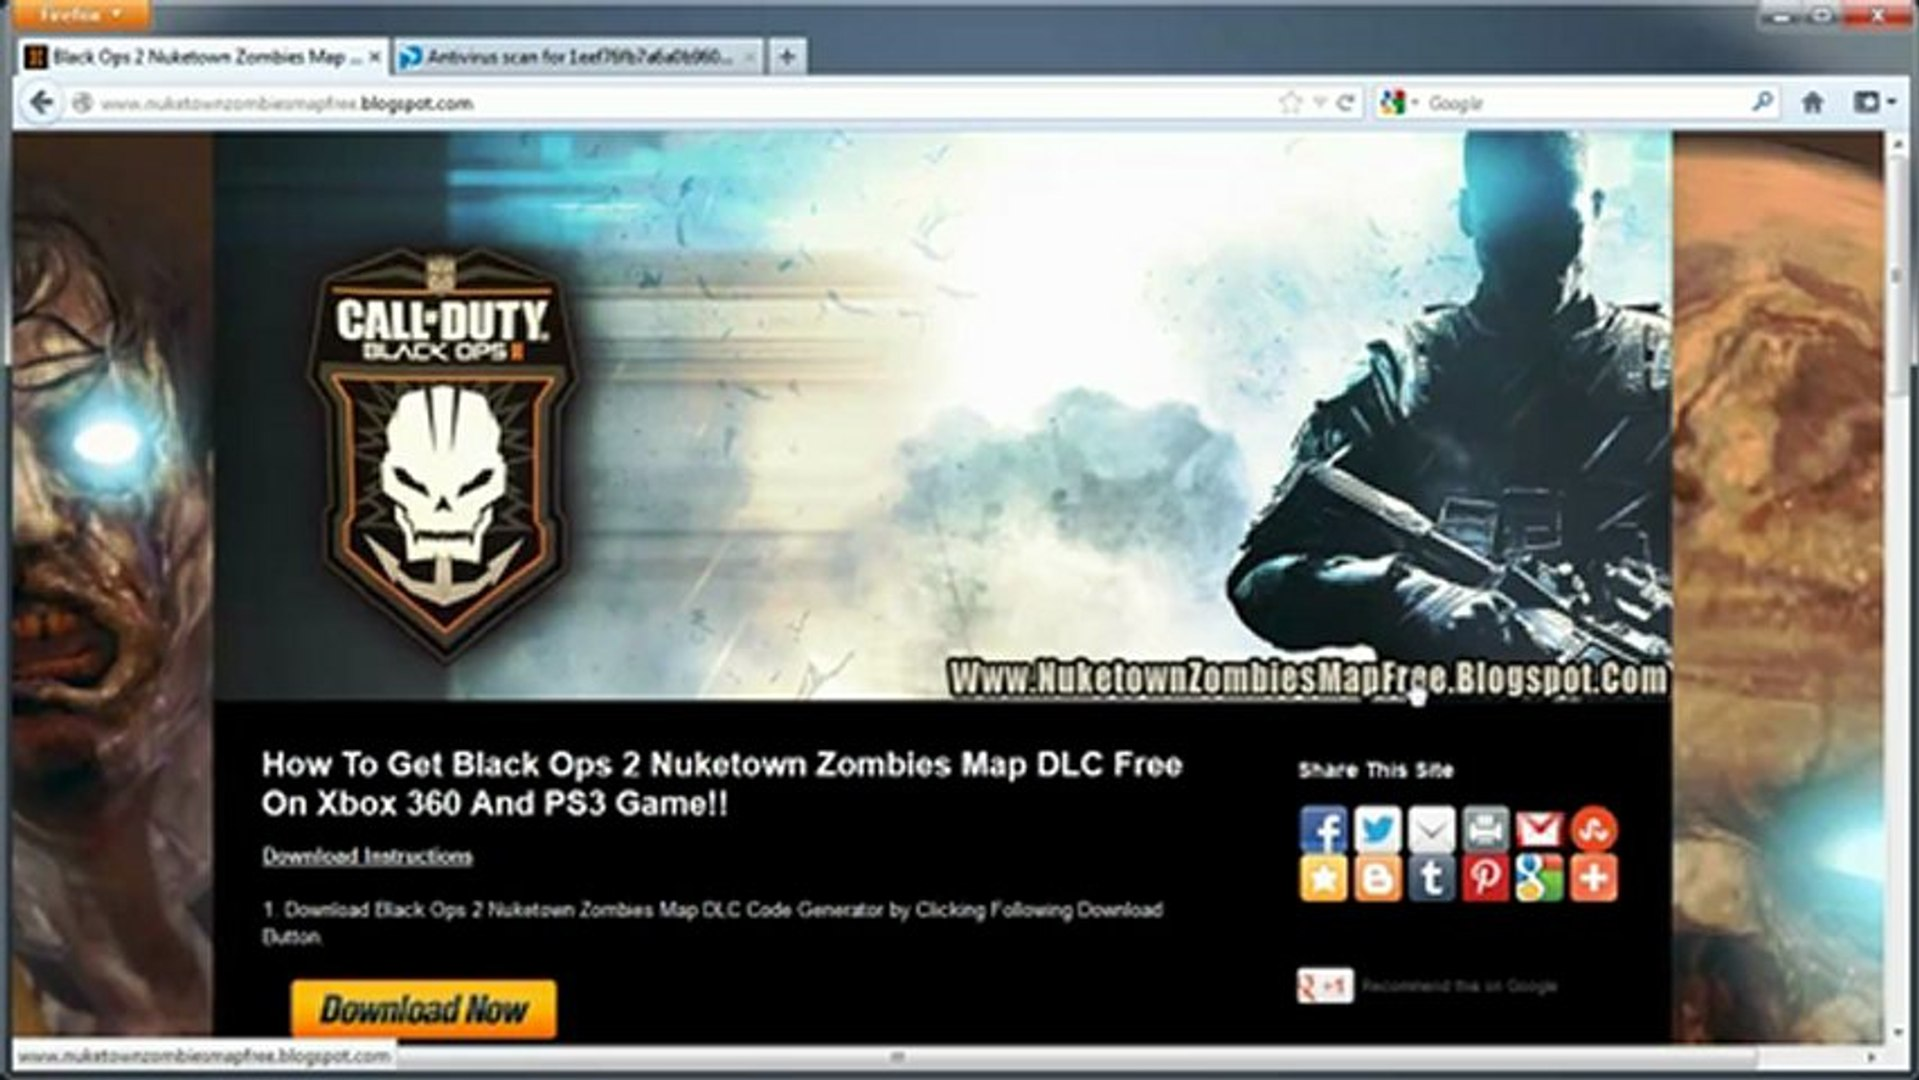 black ops 2 nuketown zombies free code ps3